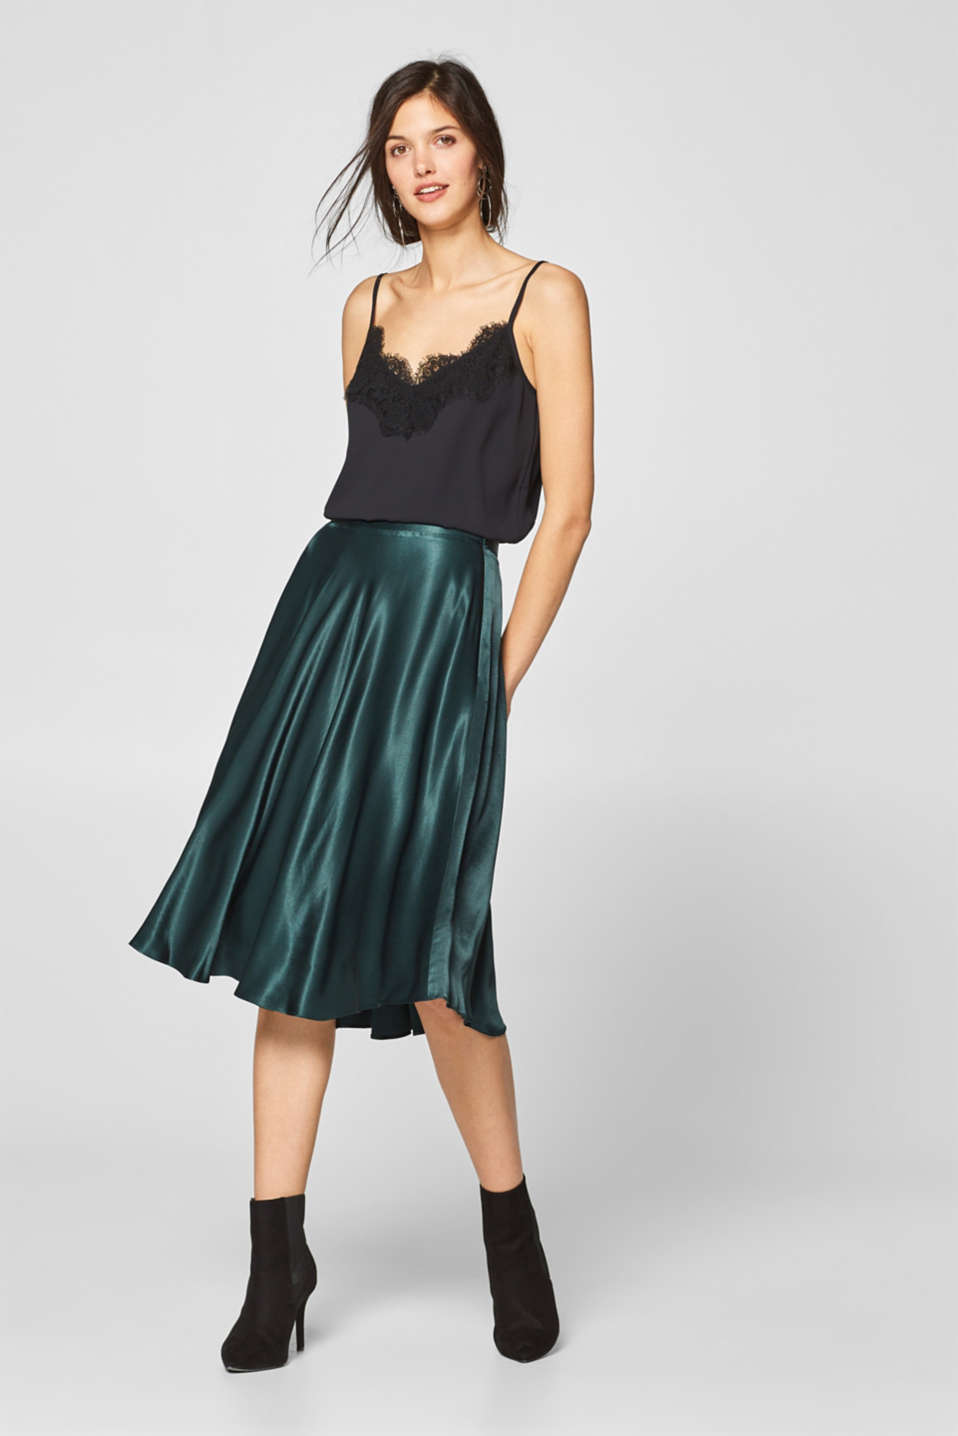 Esprit - Swirling satin skirt with shorter sides